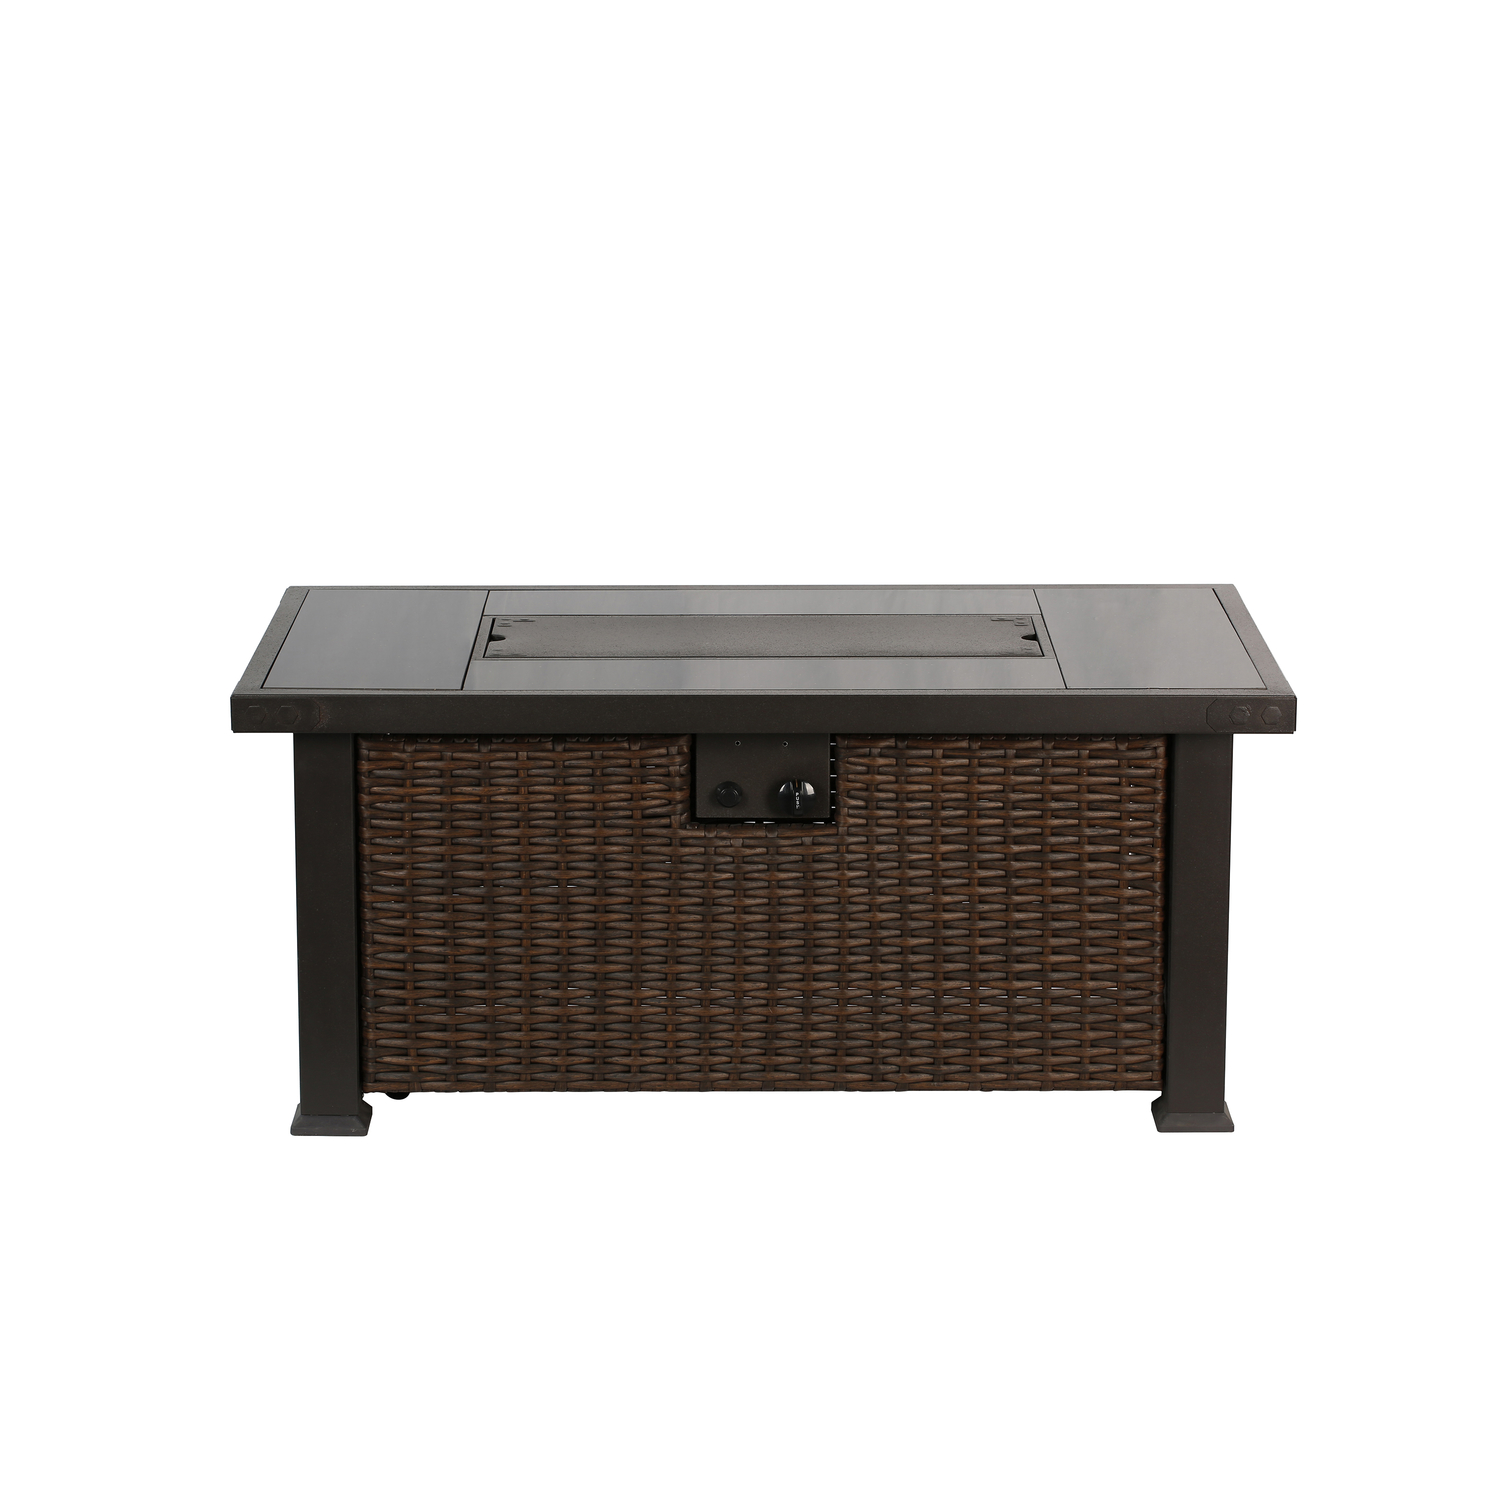 Shinerich  Rectangular  Propane  Fire Table  27.36 in. W x 23.43 in. H x 52 in. D Steel